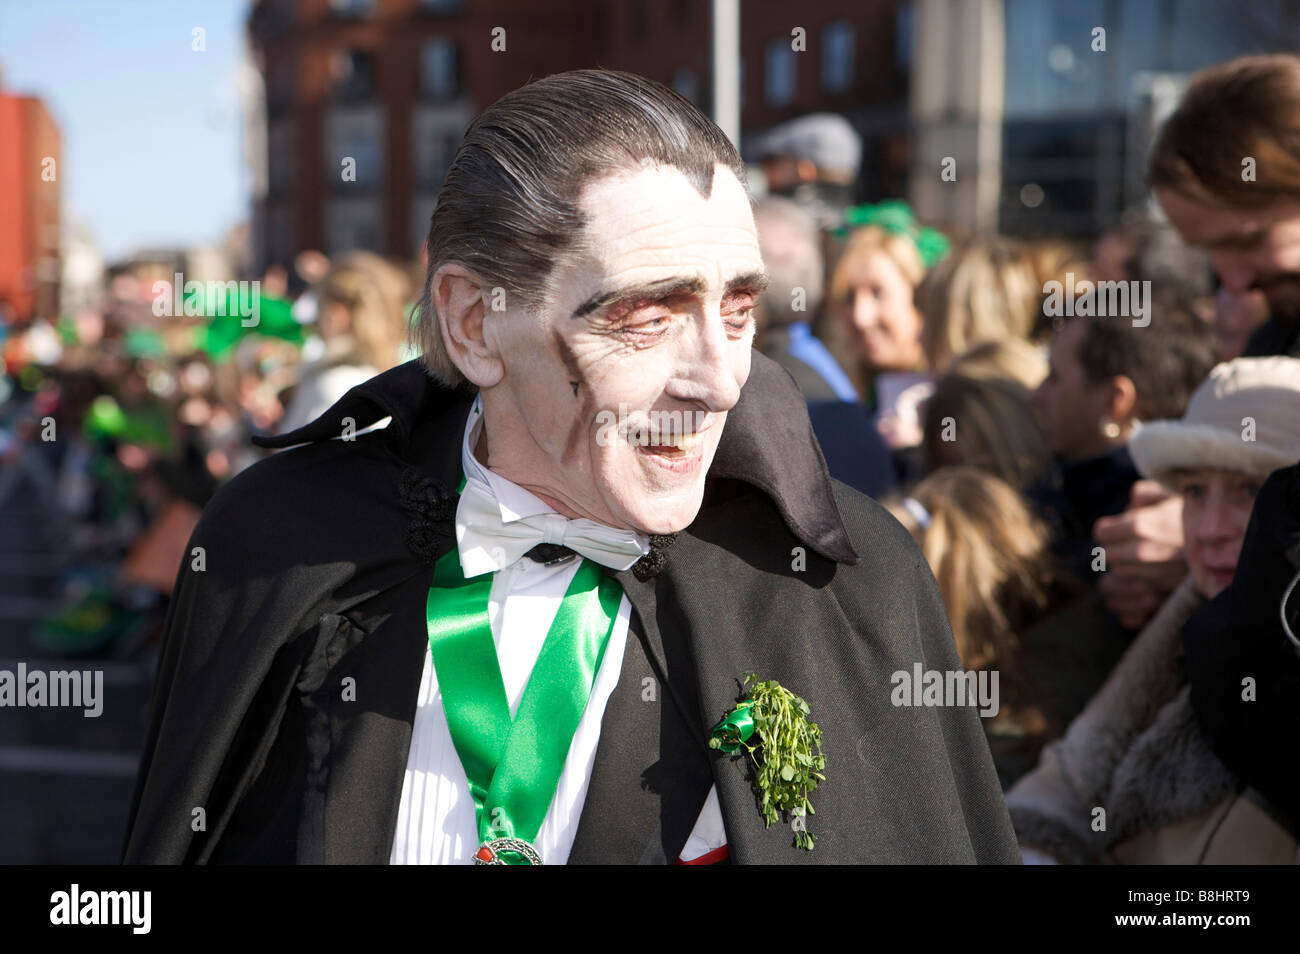 Participants, spectators and characters and parade onlookers in the St Patricks Day parade, Dublin, Ireland Stock Photo